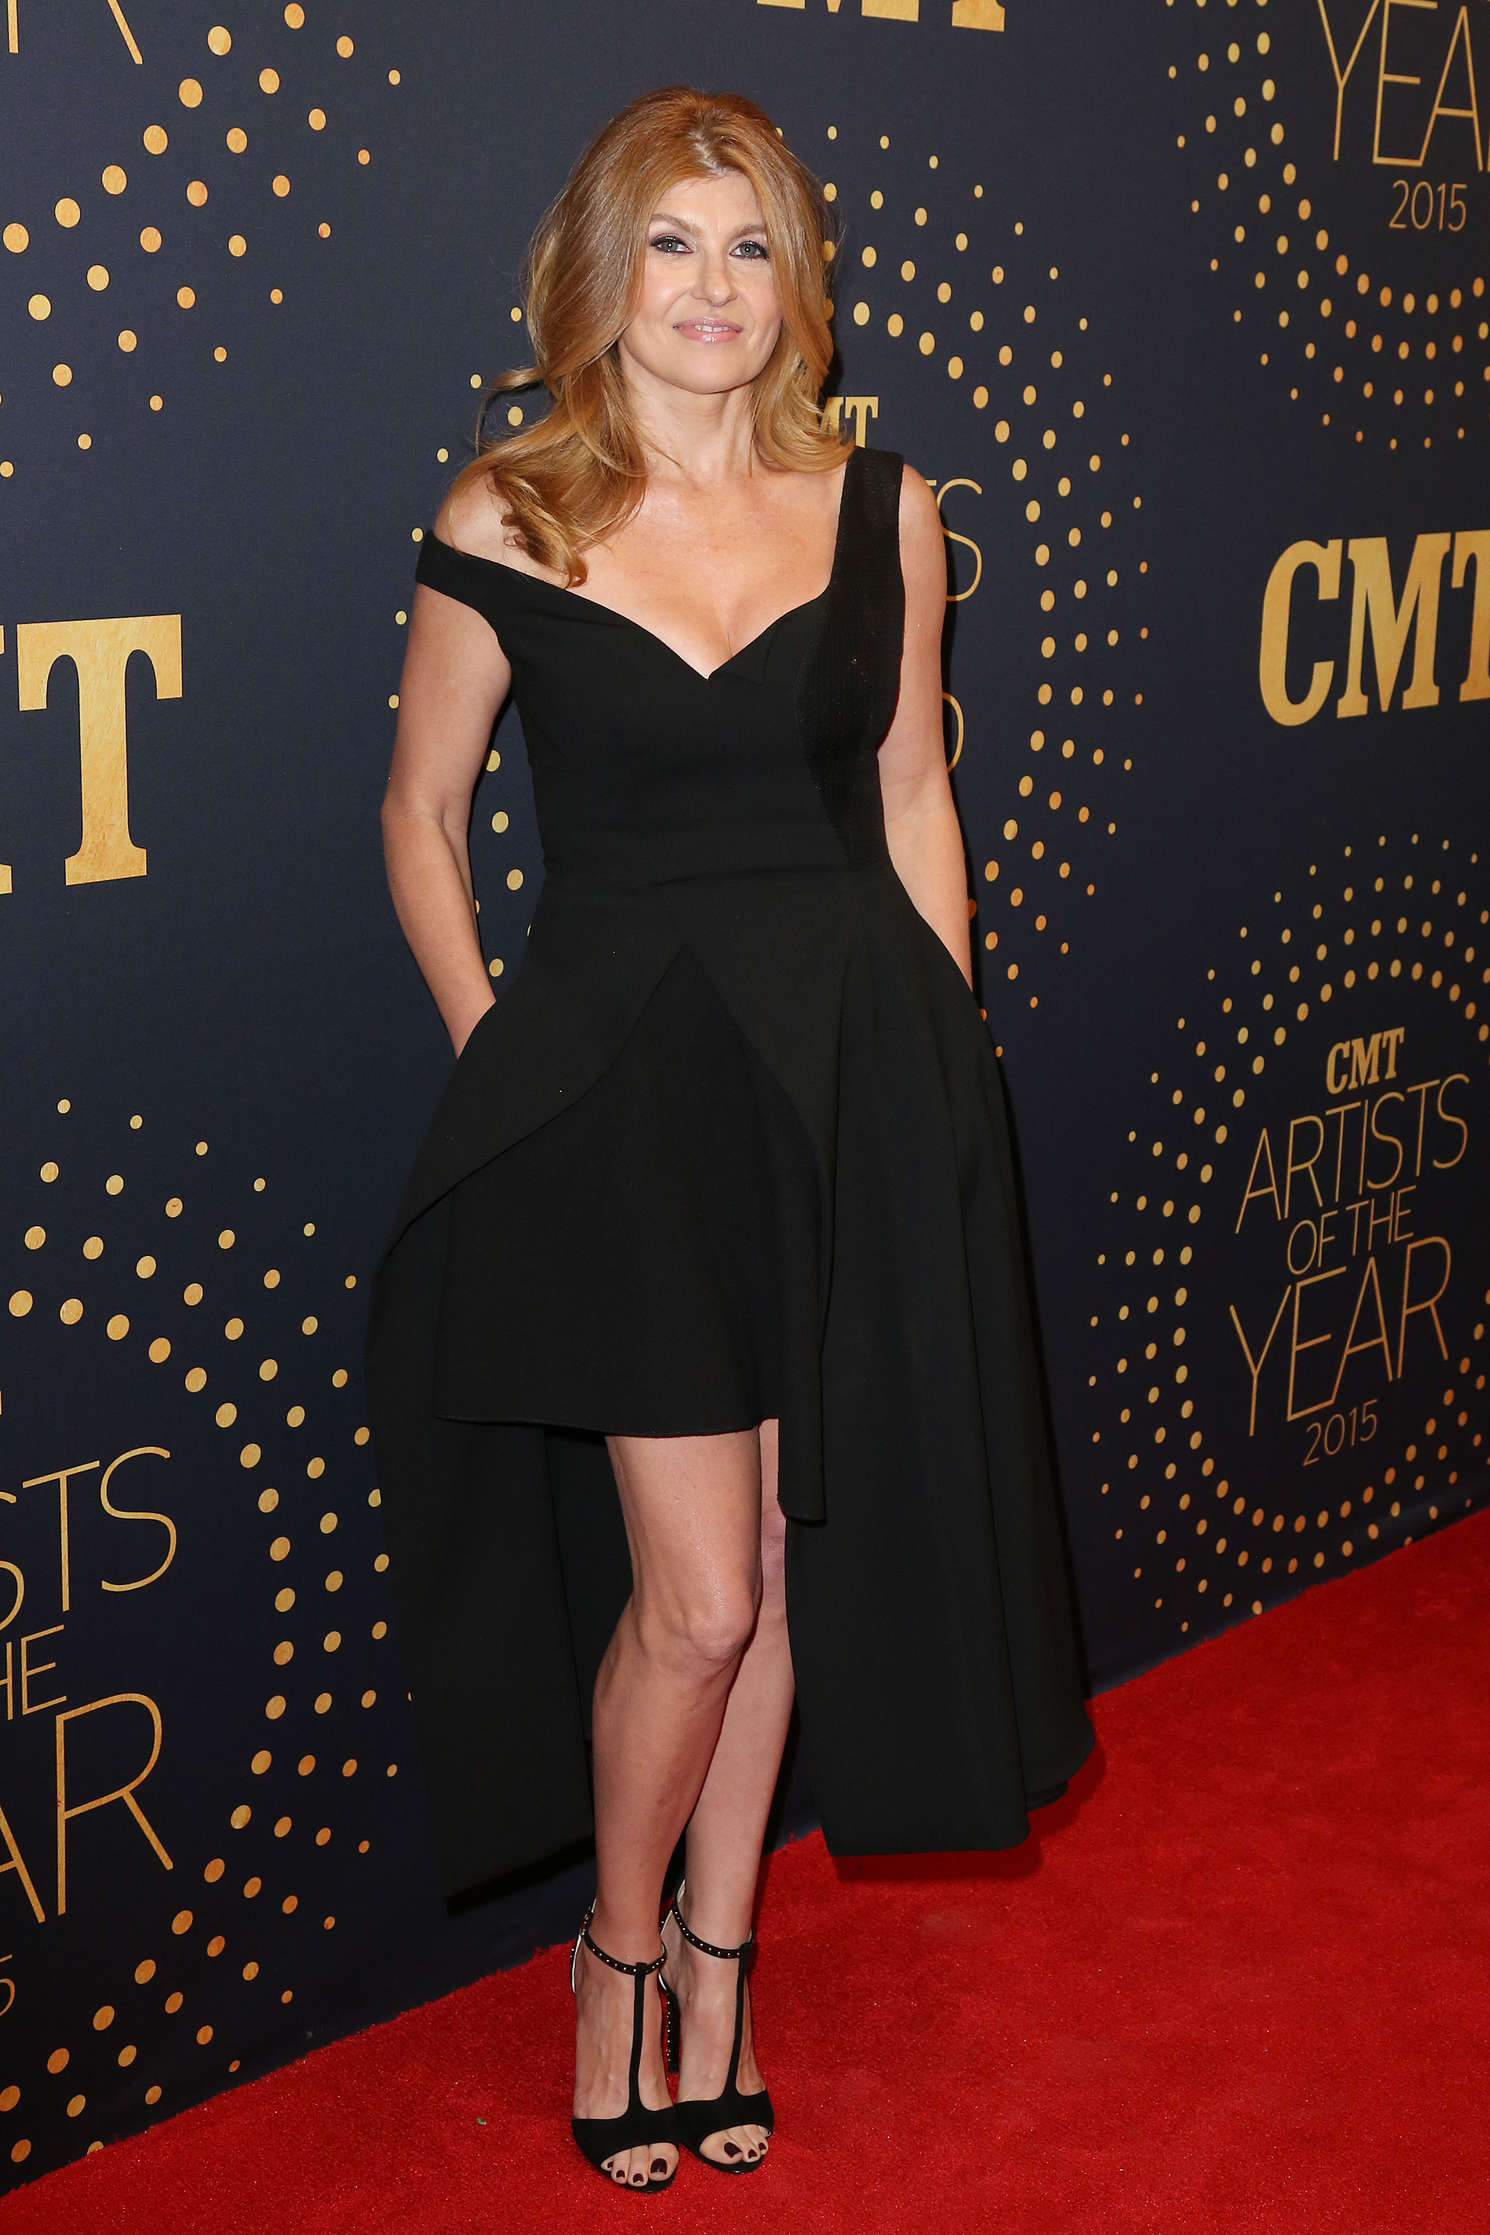 Connie Britton CMT Artists of the Year in Nashville